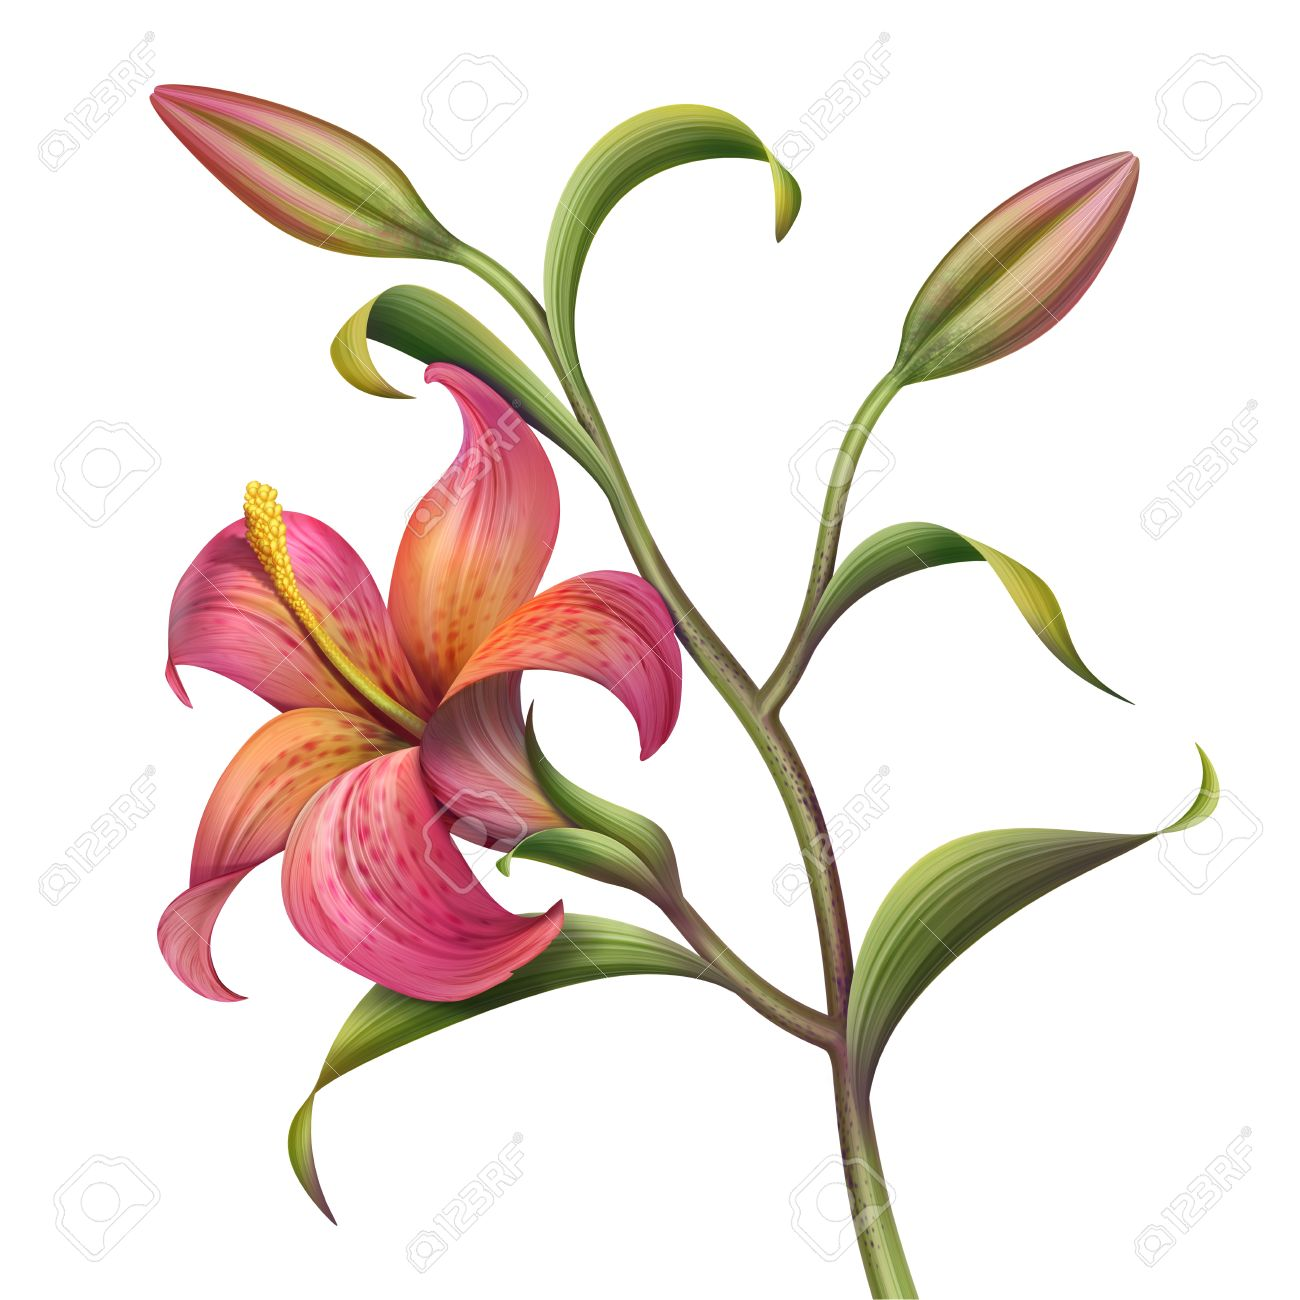 Red abstract tropical lily flower illustration stock photo picture illustration red abstract tropical lily flower illustration izmirmasajfo Images